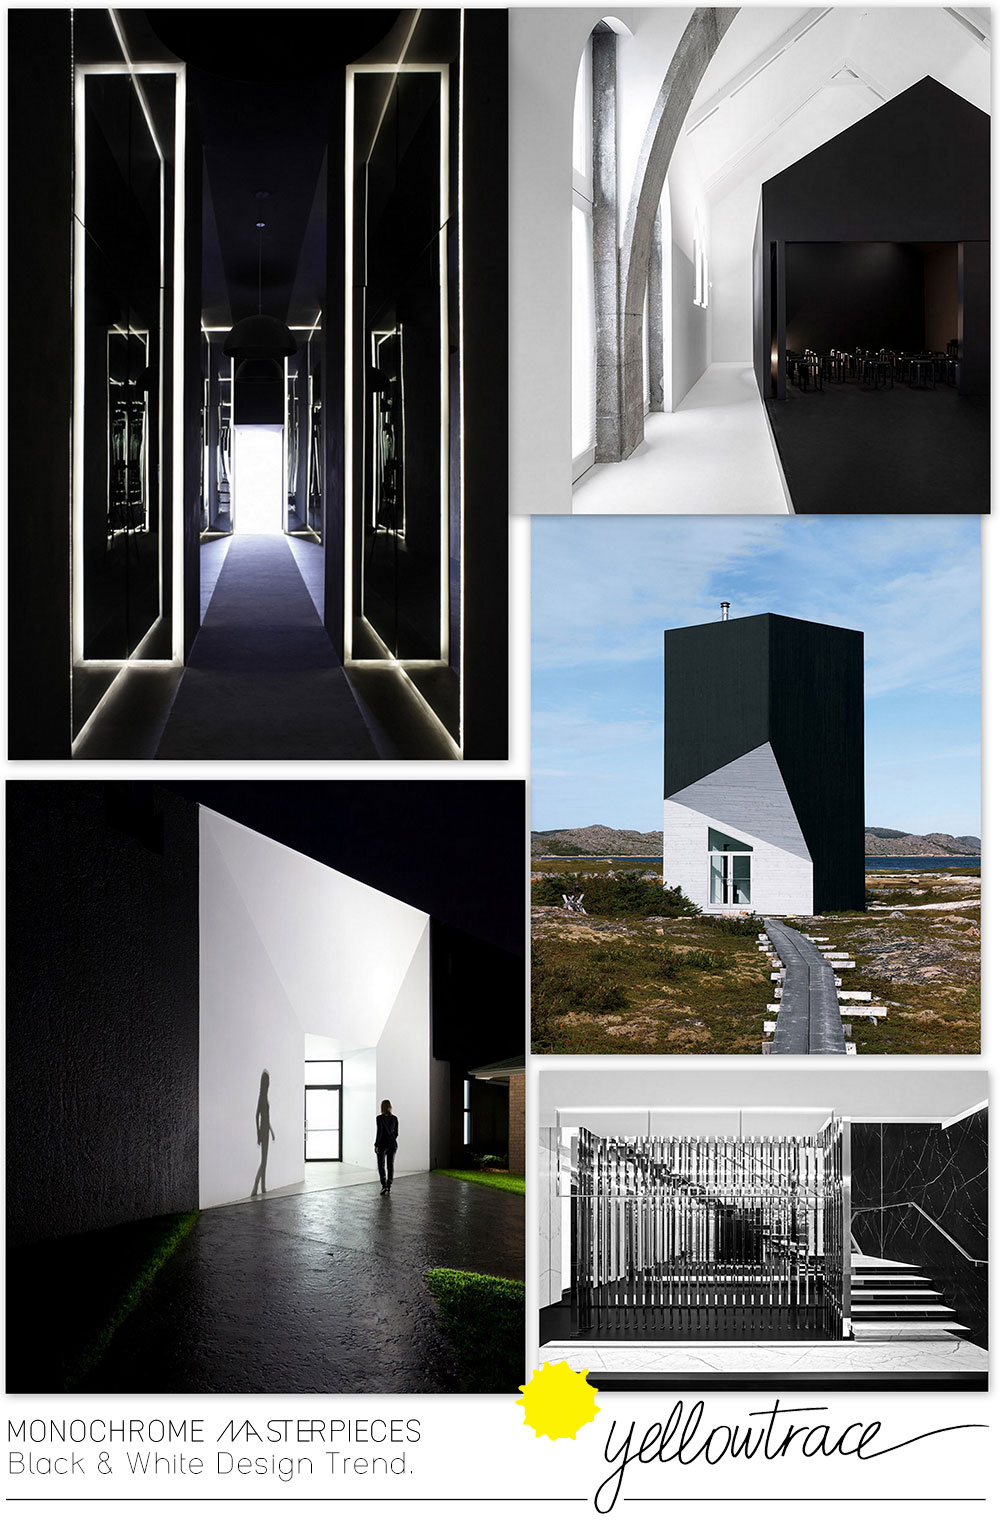 Monochrome Masterpieces | Black and White Design Trends Curated by Yellowtrace.